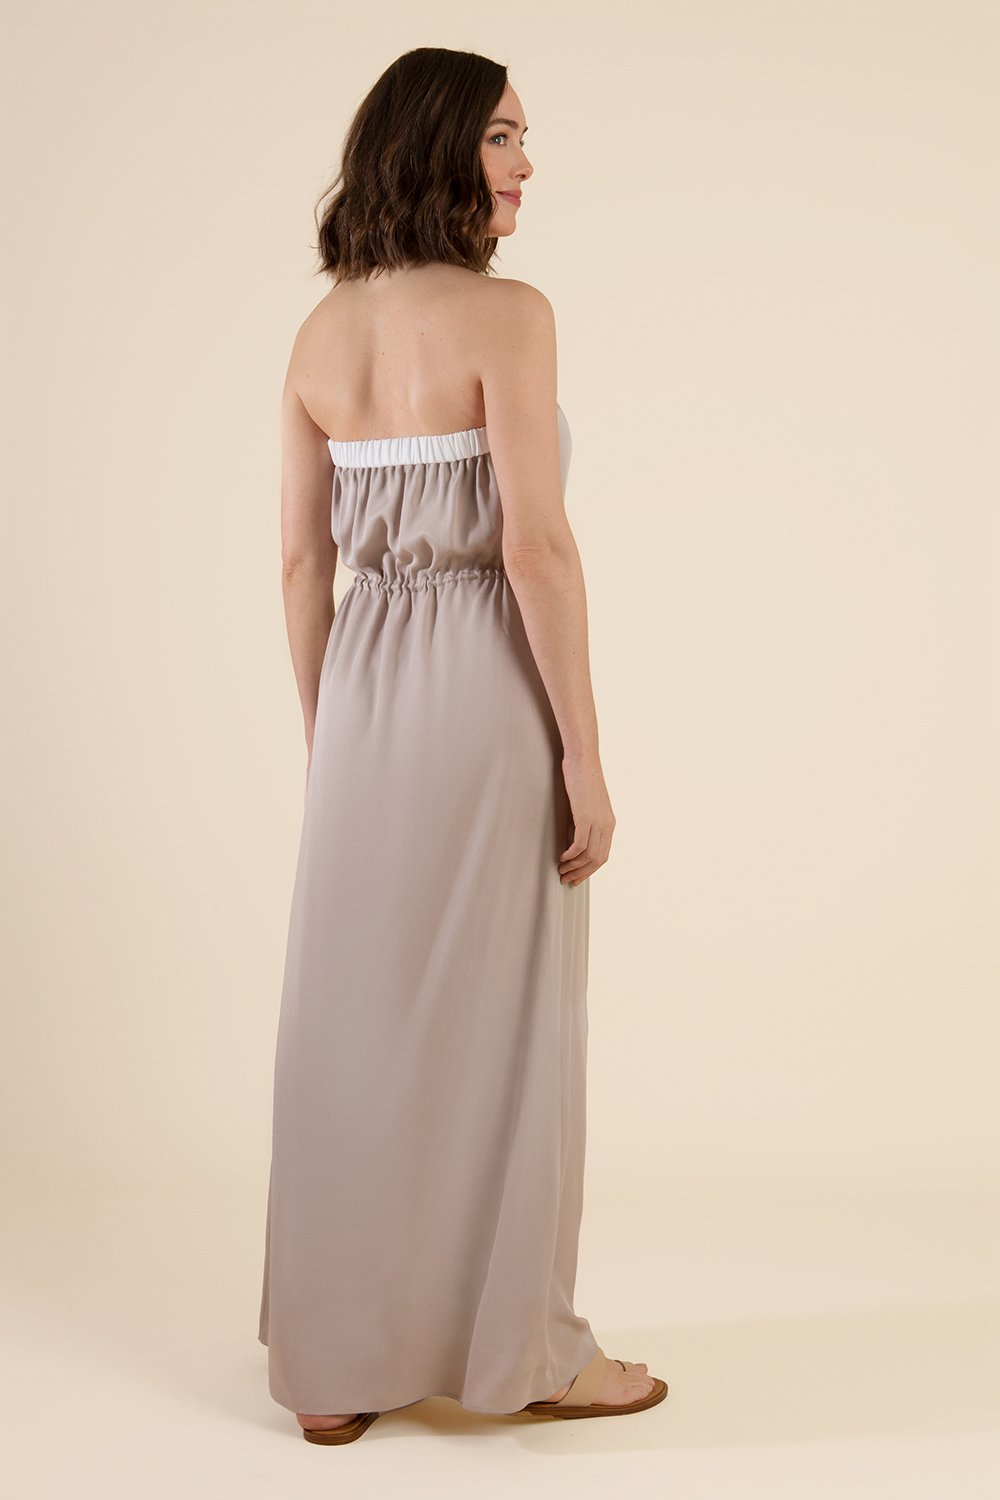 Beige Strapless Maxi Dress